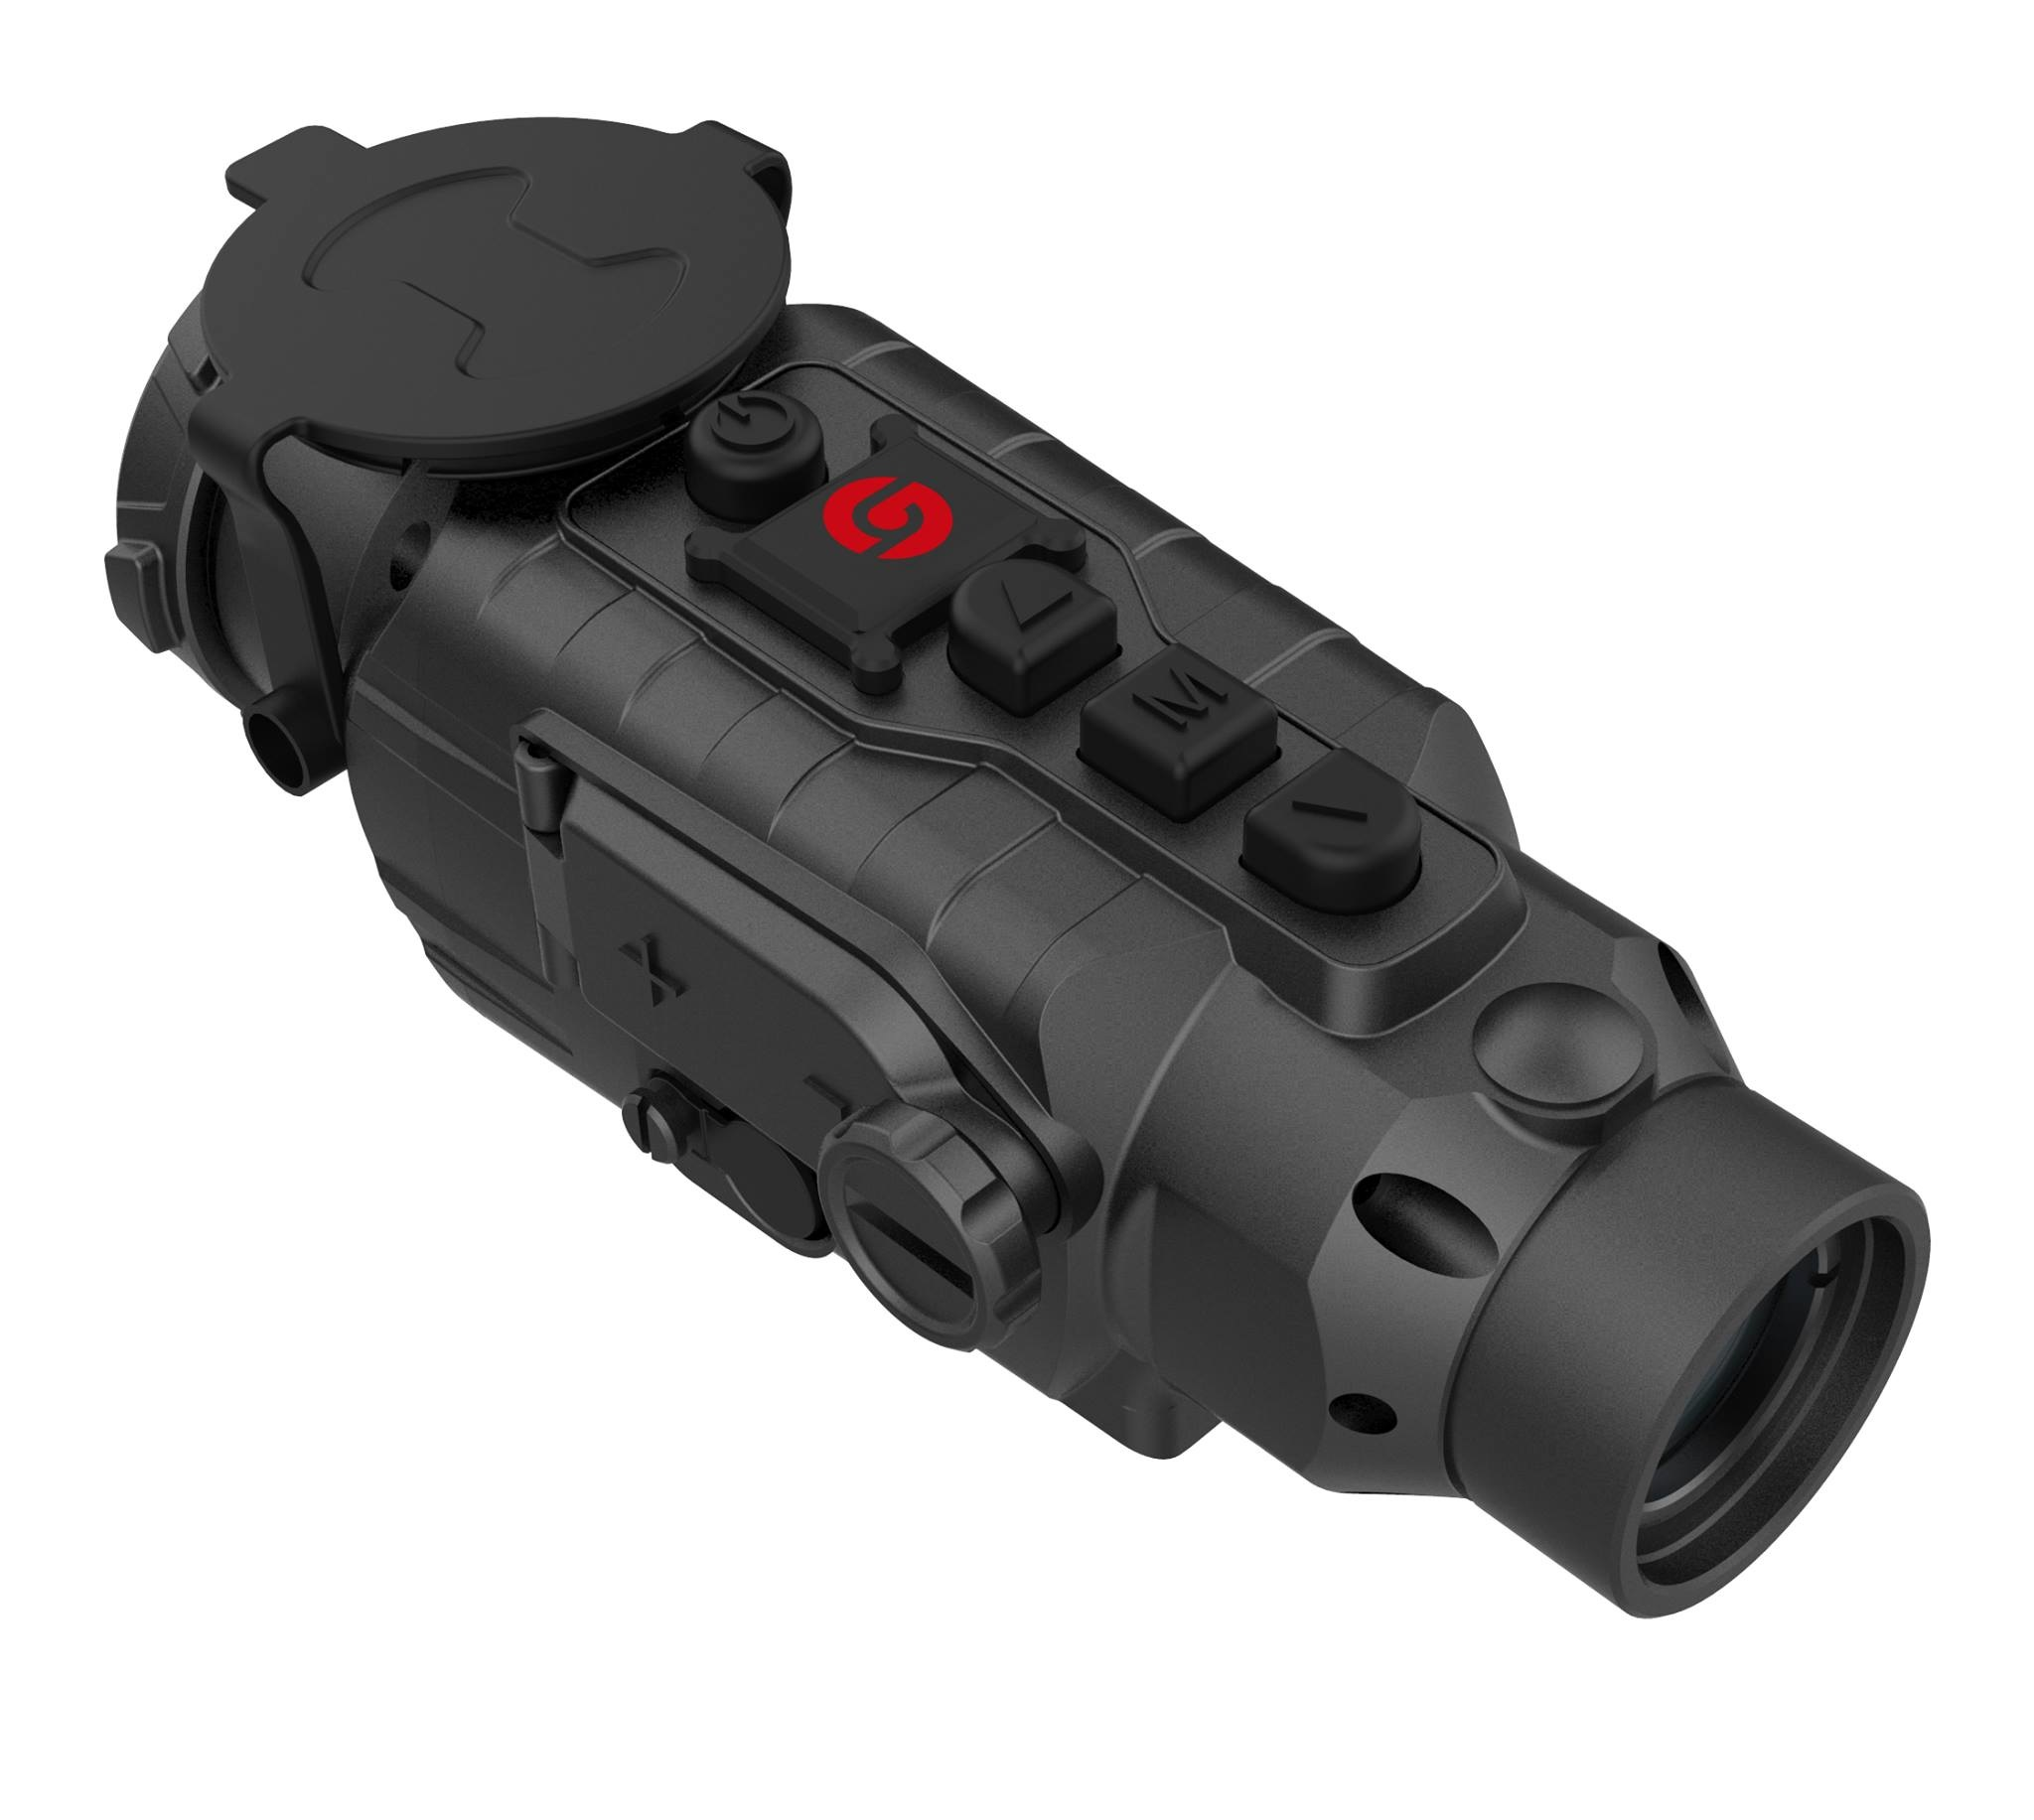 Guide TA435 Thermal Imaging Clip-On System DEMO